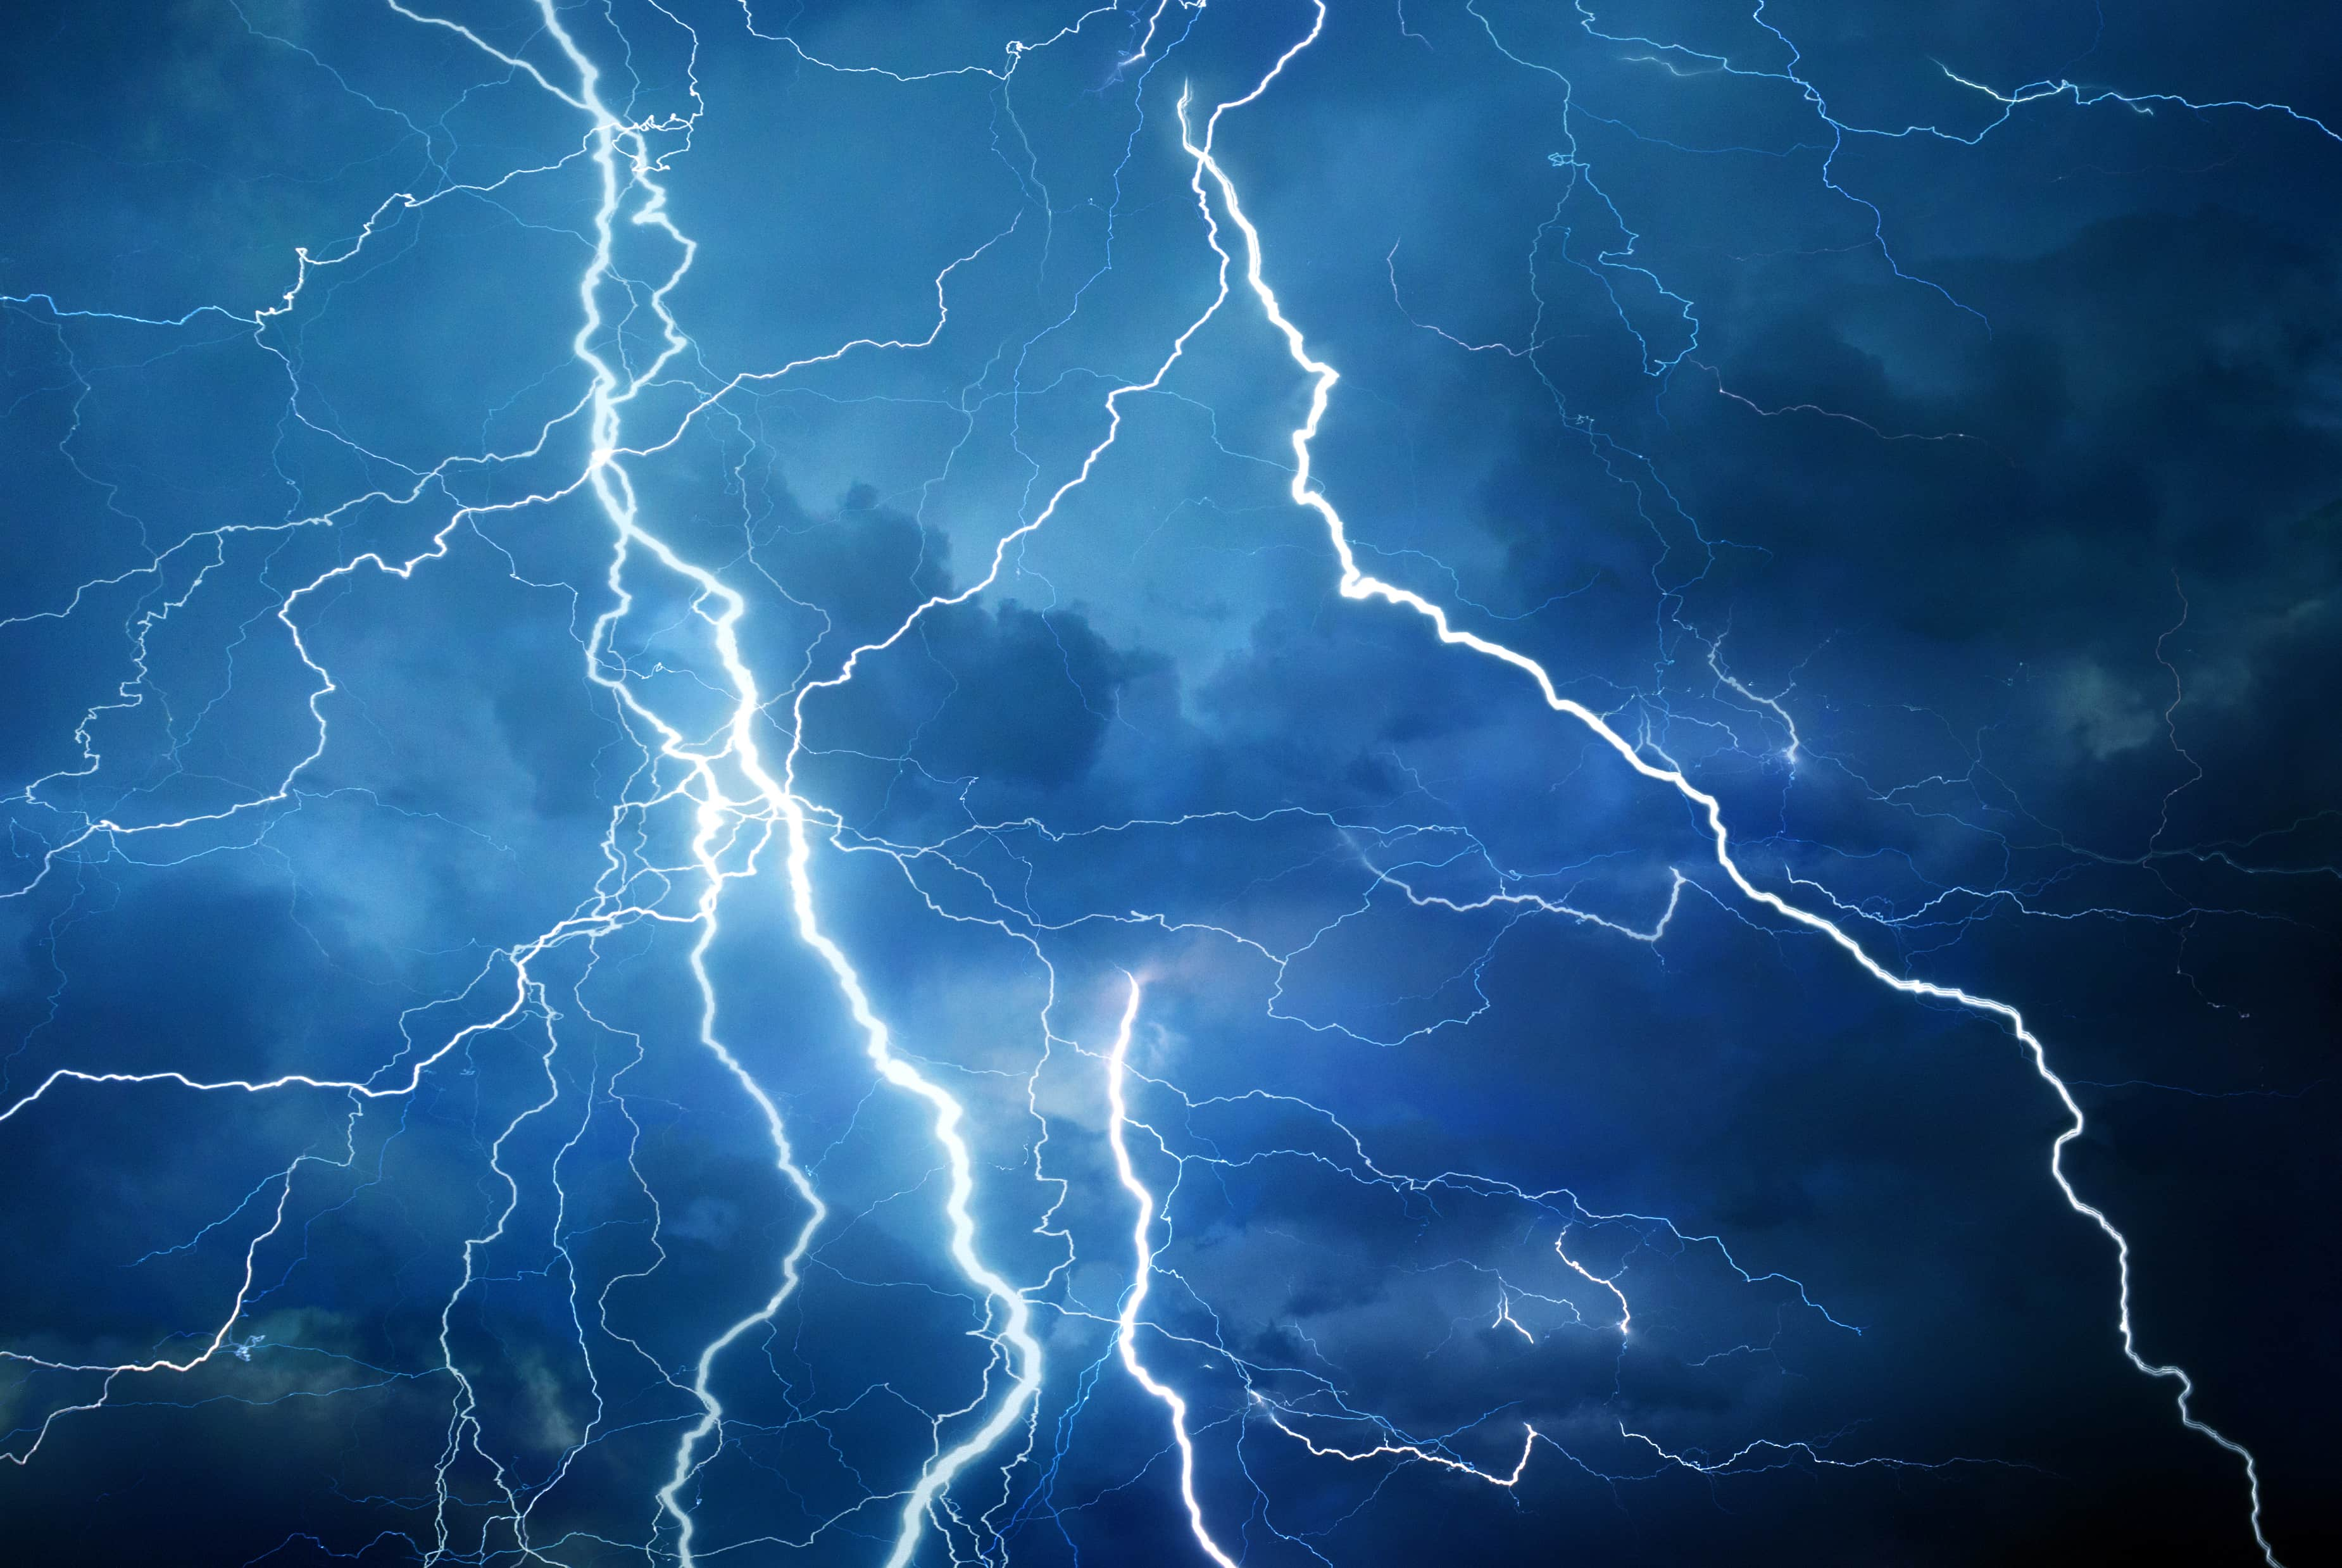 lightening during storm affecting air conditioner